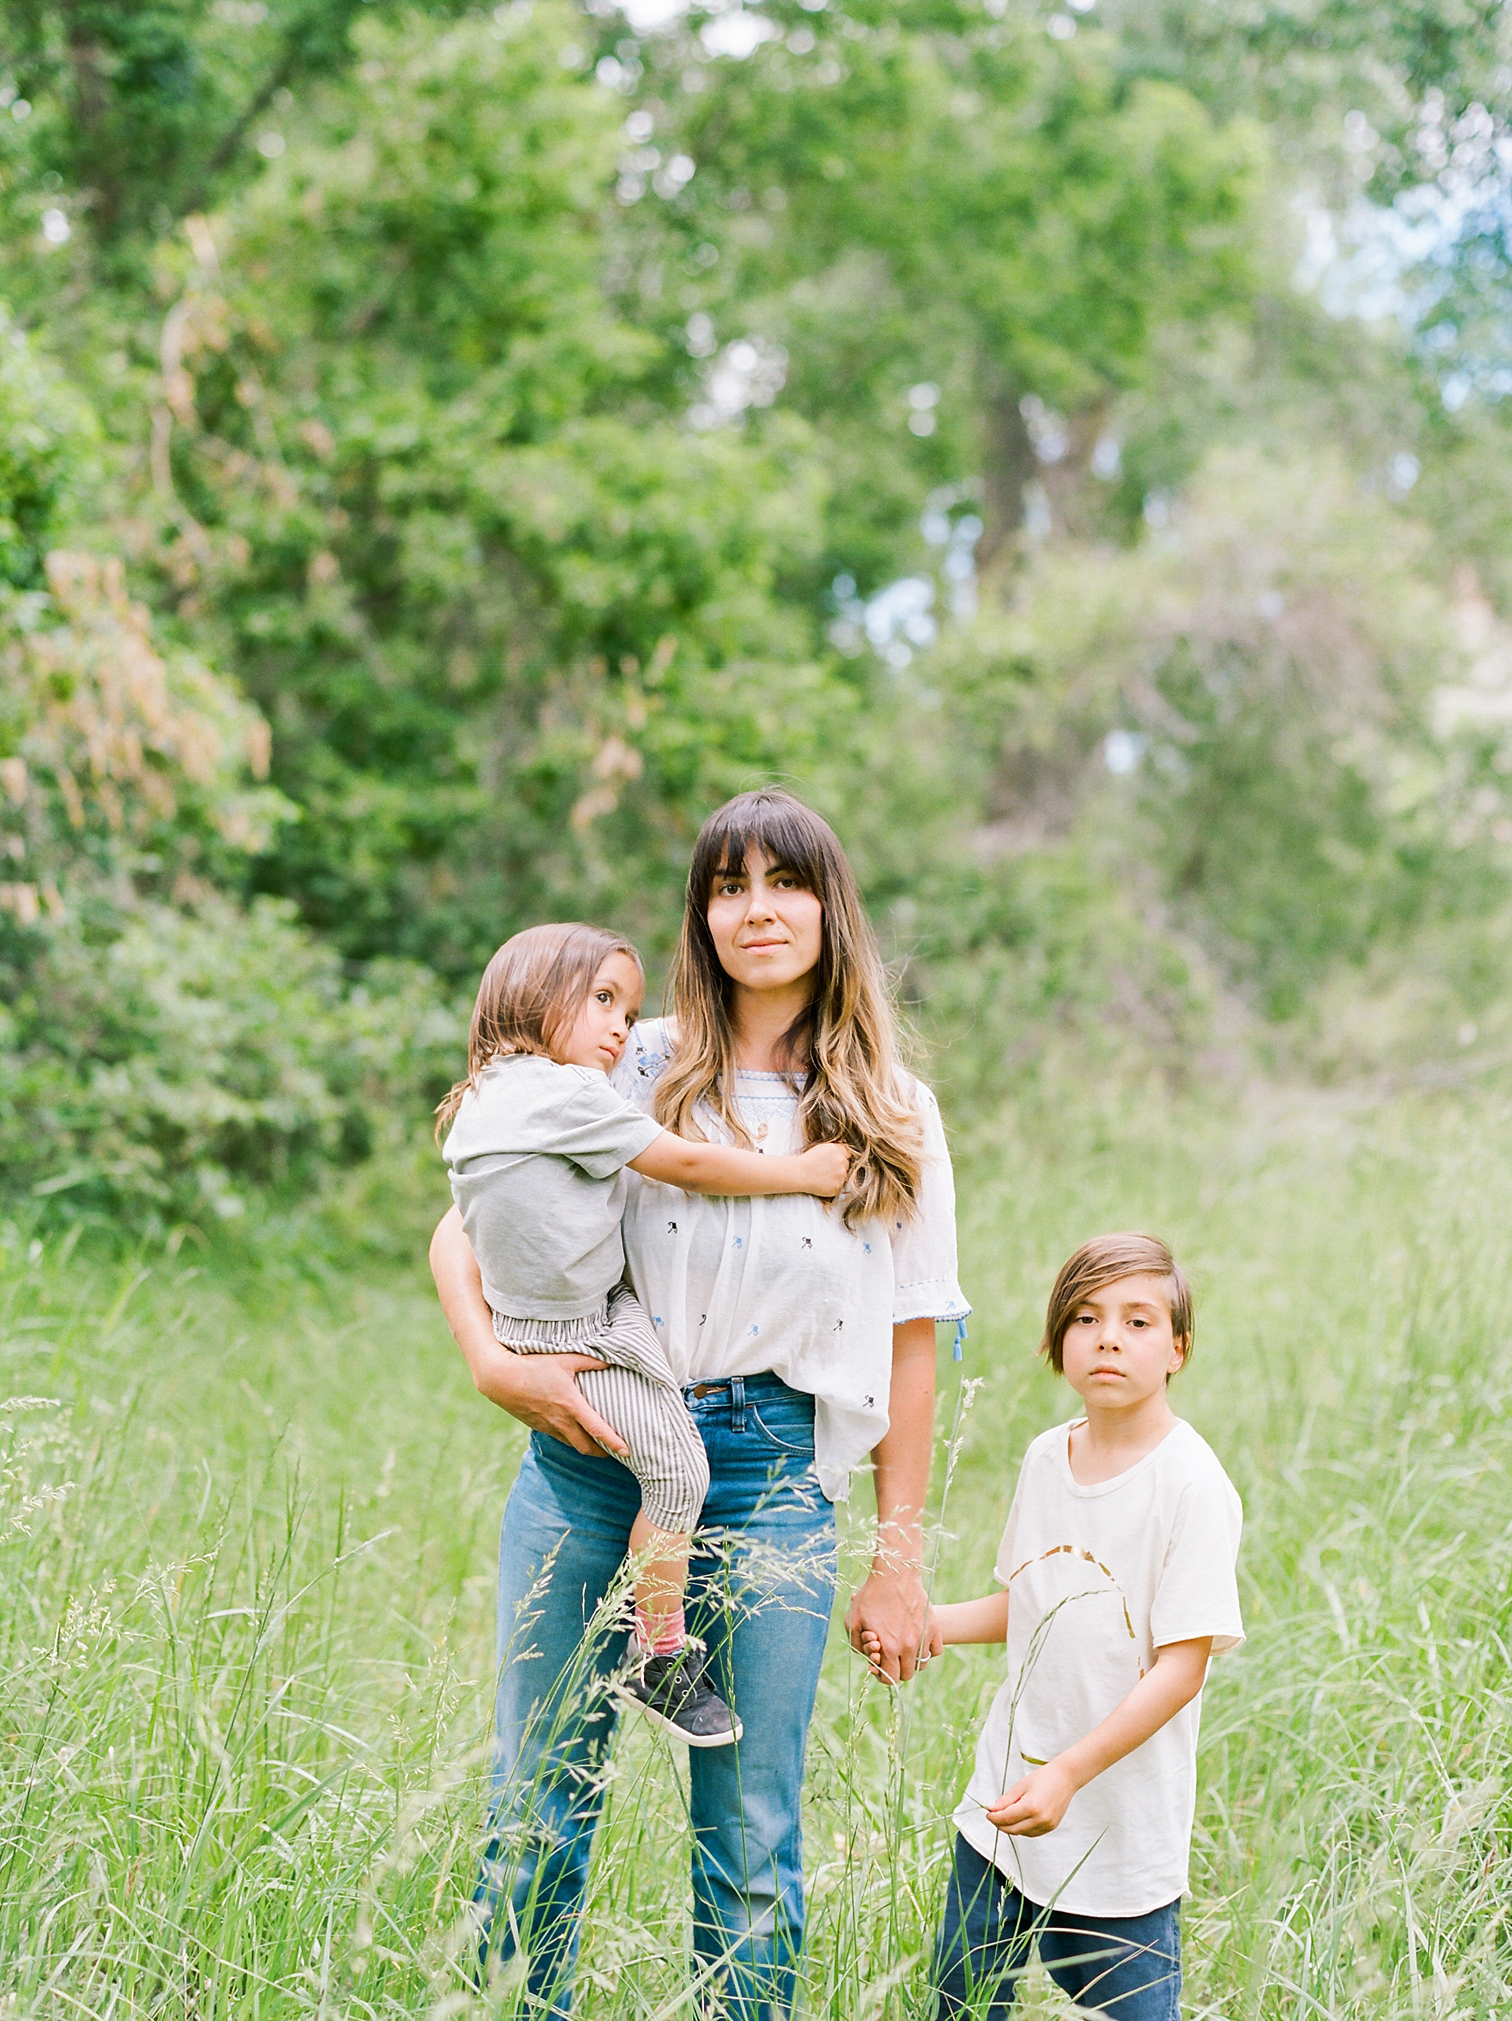 Film Photographers, Colorado Family Portraits, Fort Collins Portrait Photographer, Summer Family Portraits, Mother With Children At Park, Rolleflex Camera, Danielle DeFiore Photography